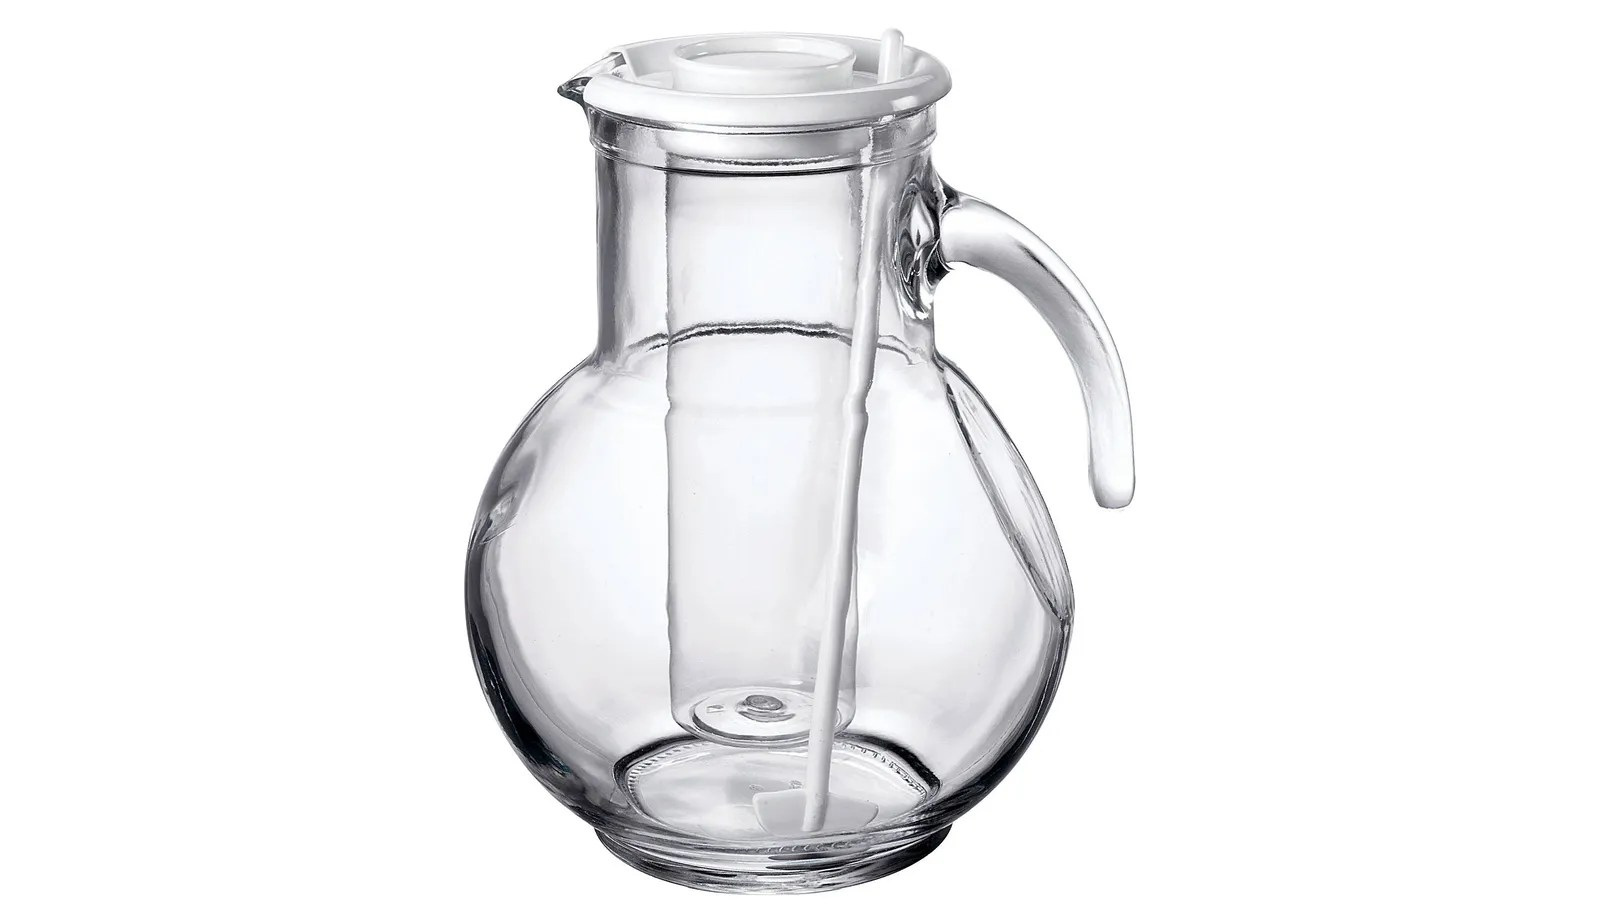 Pitchers Jugs Best Water Pitchers To Store In Your Fridge Epicurious